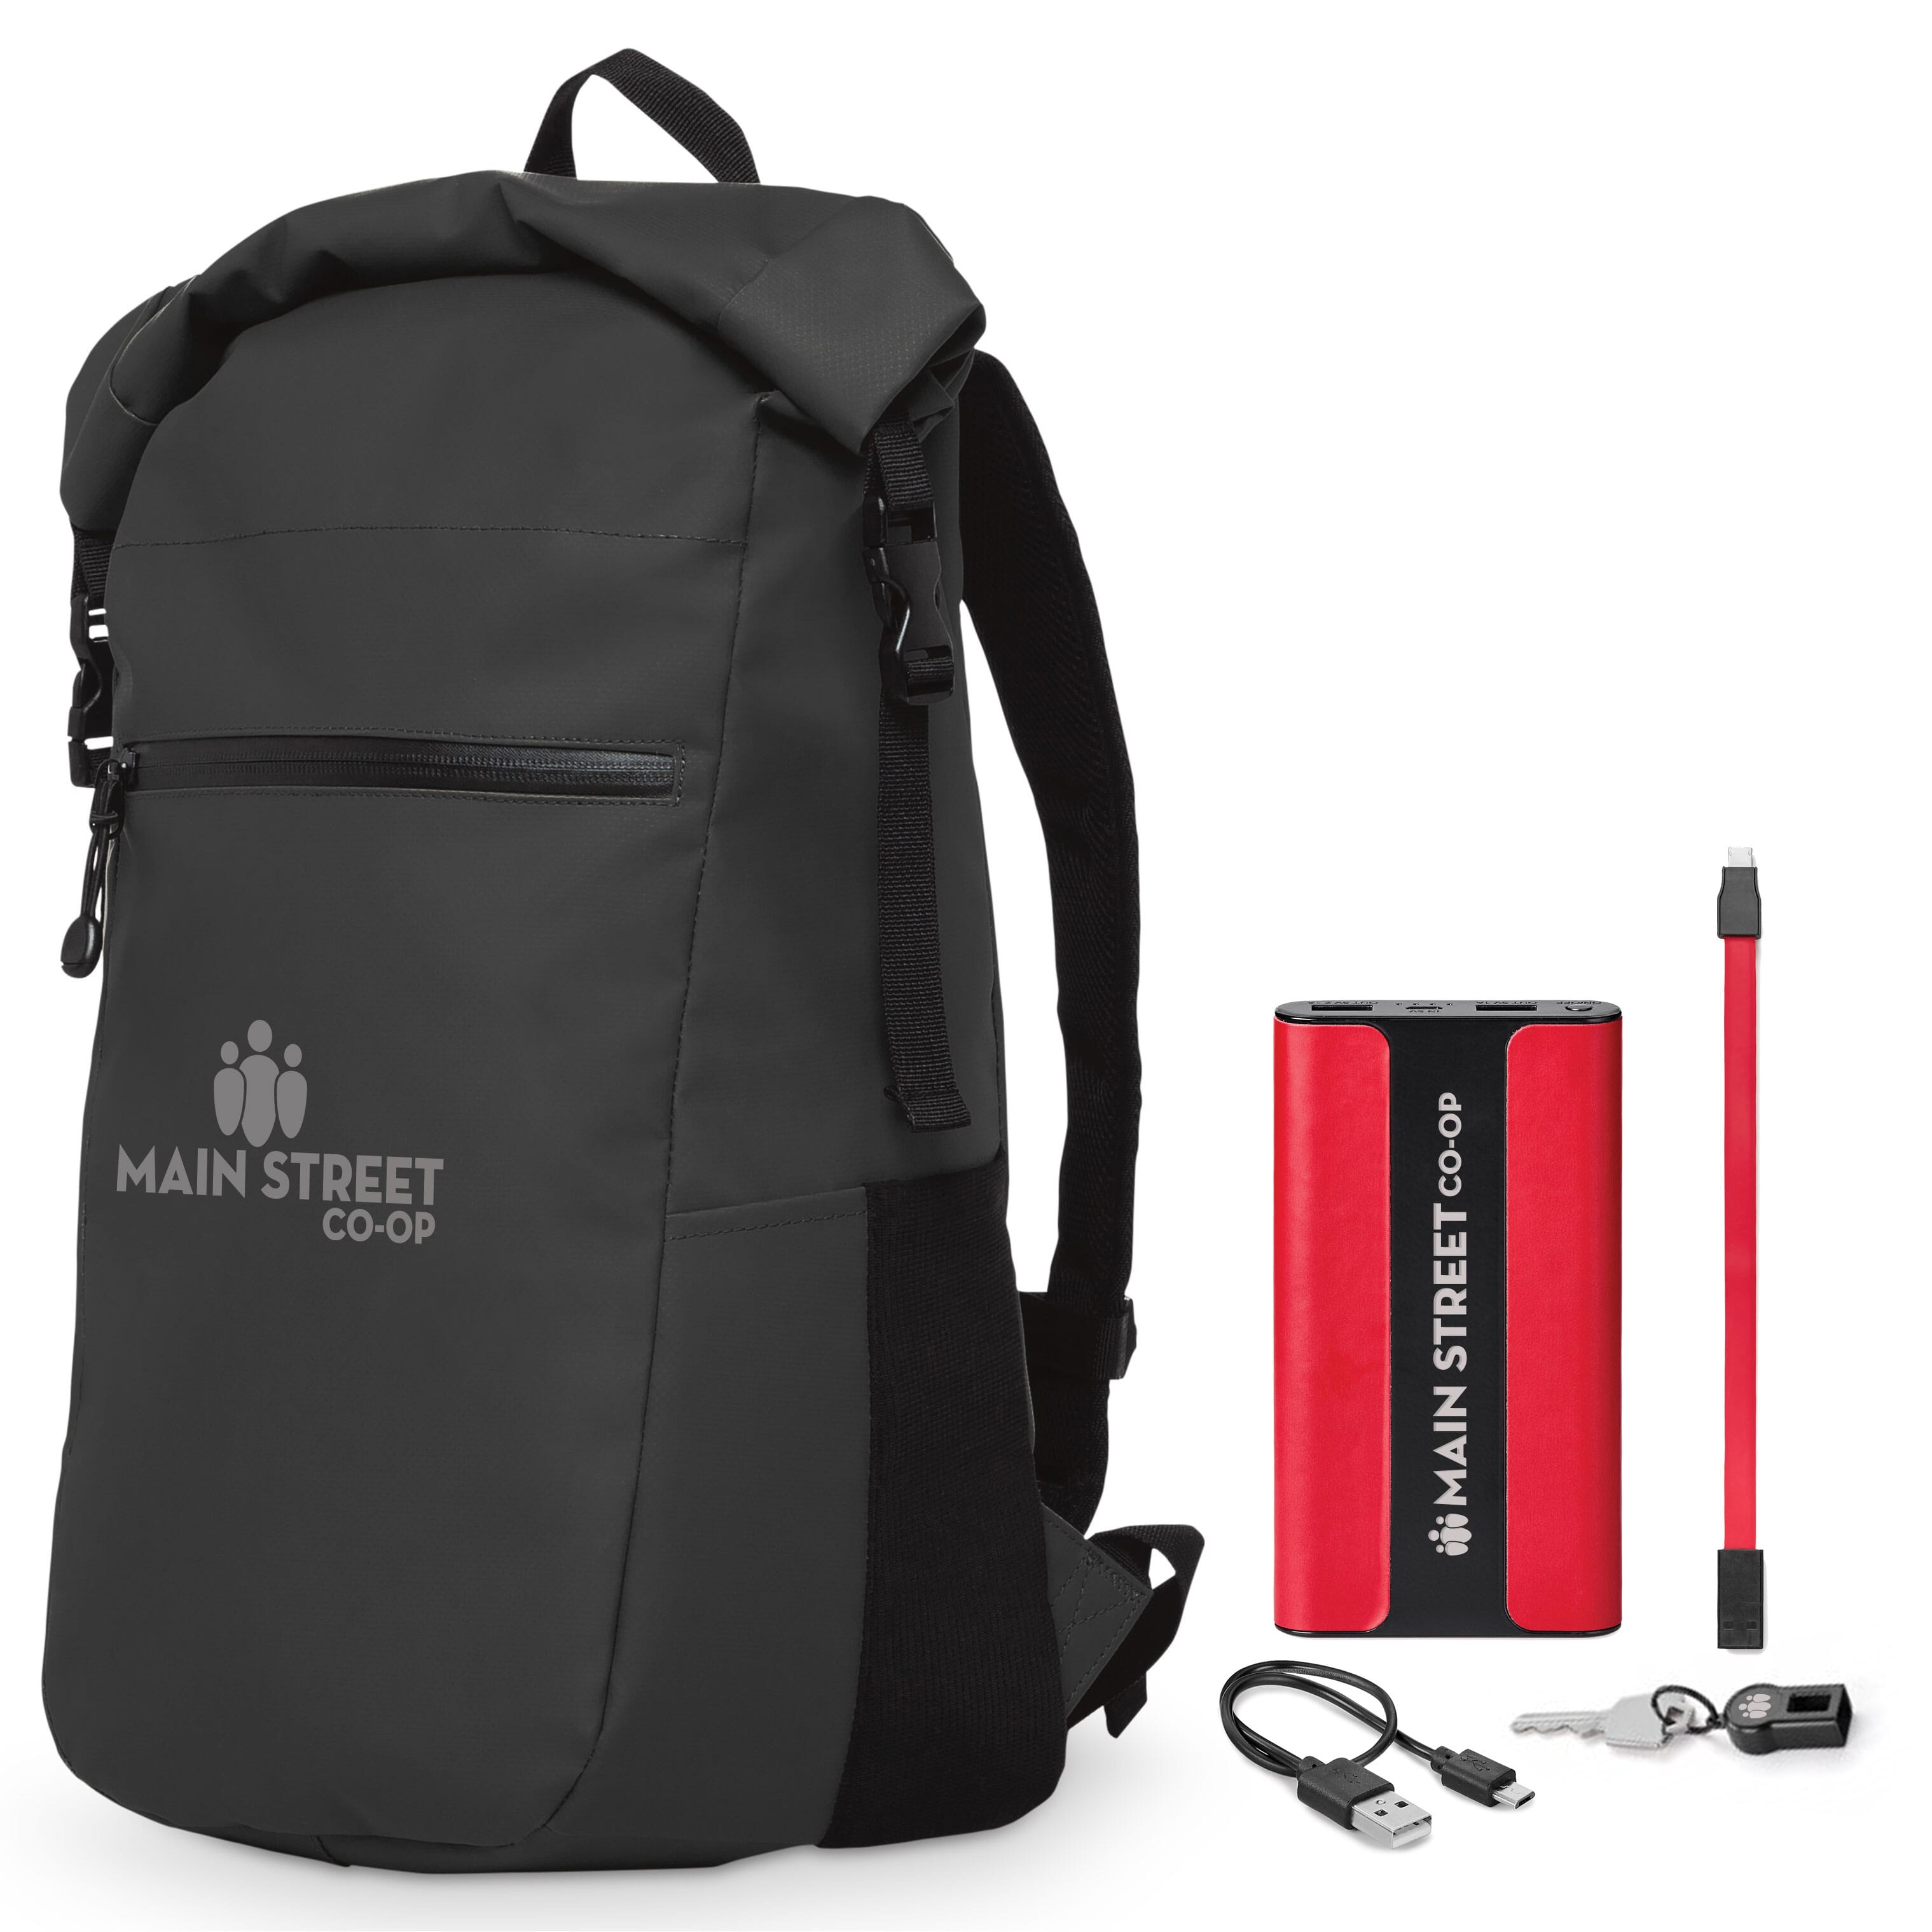 Black backpack with red power bank